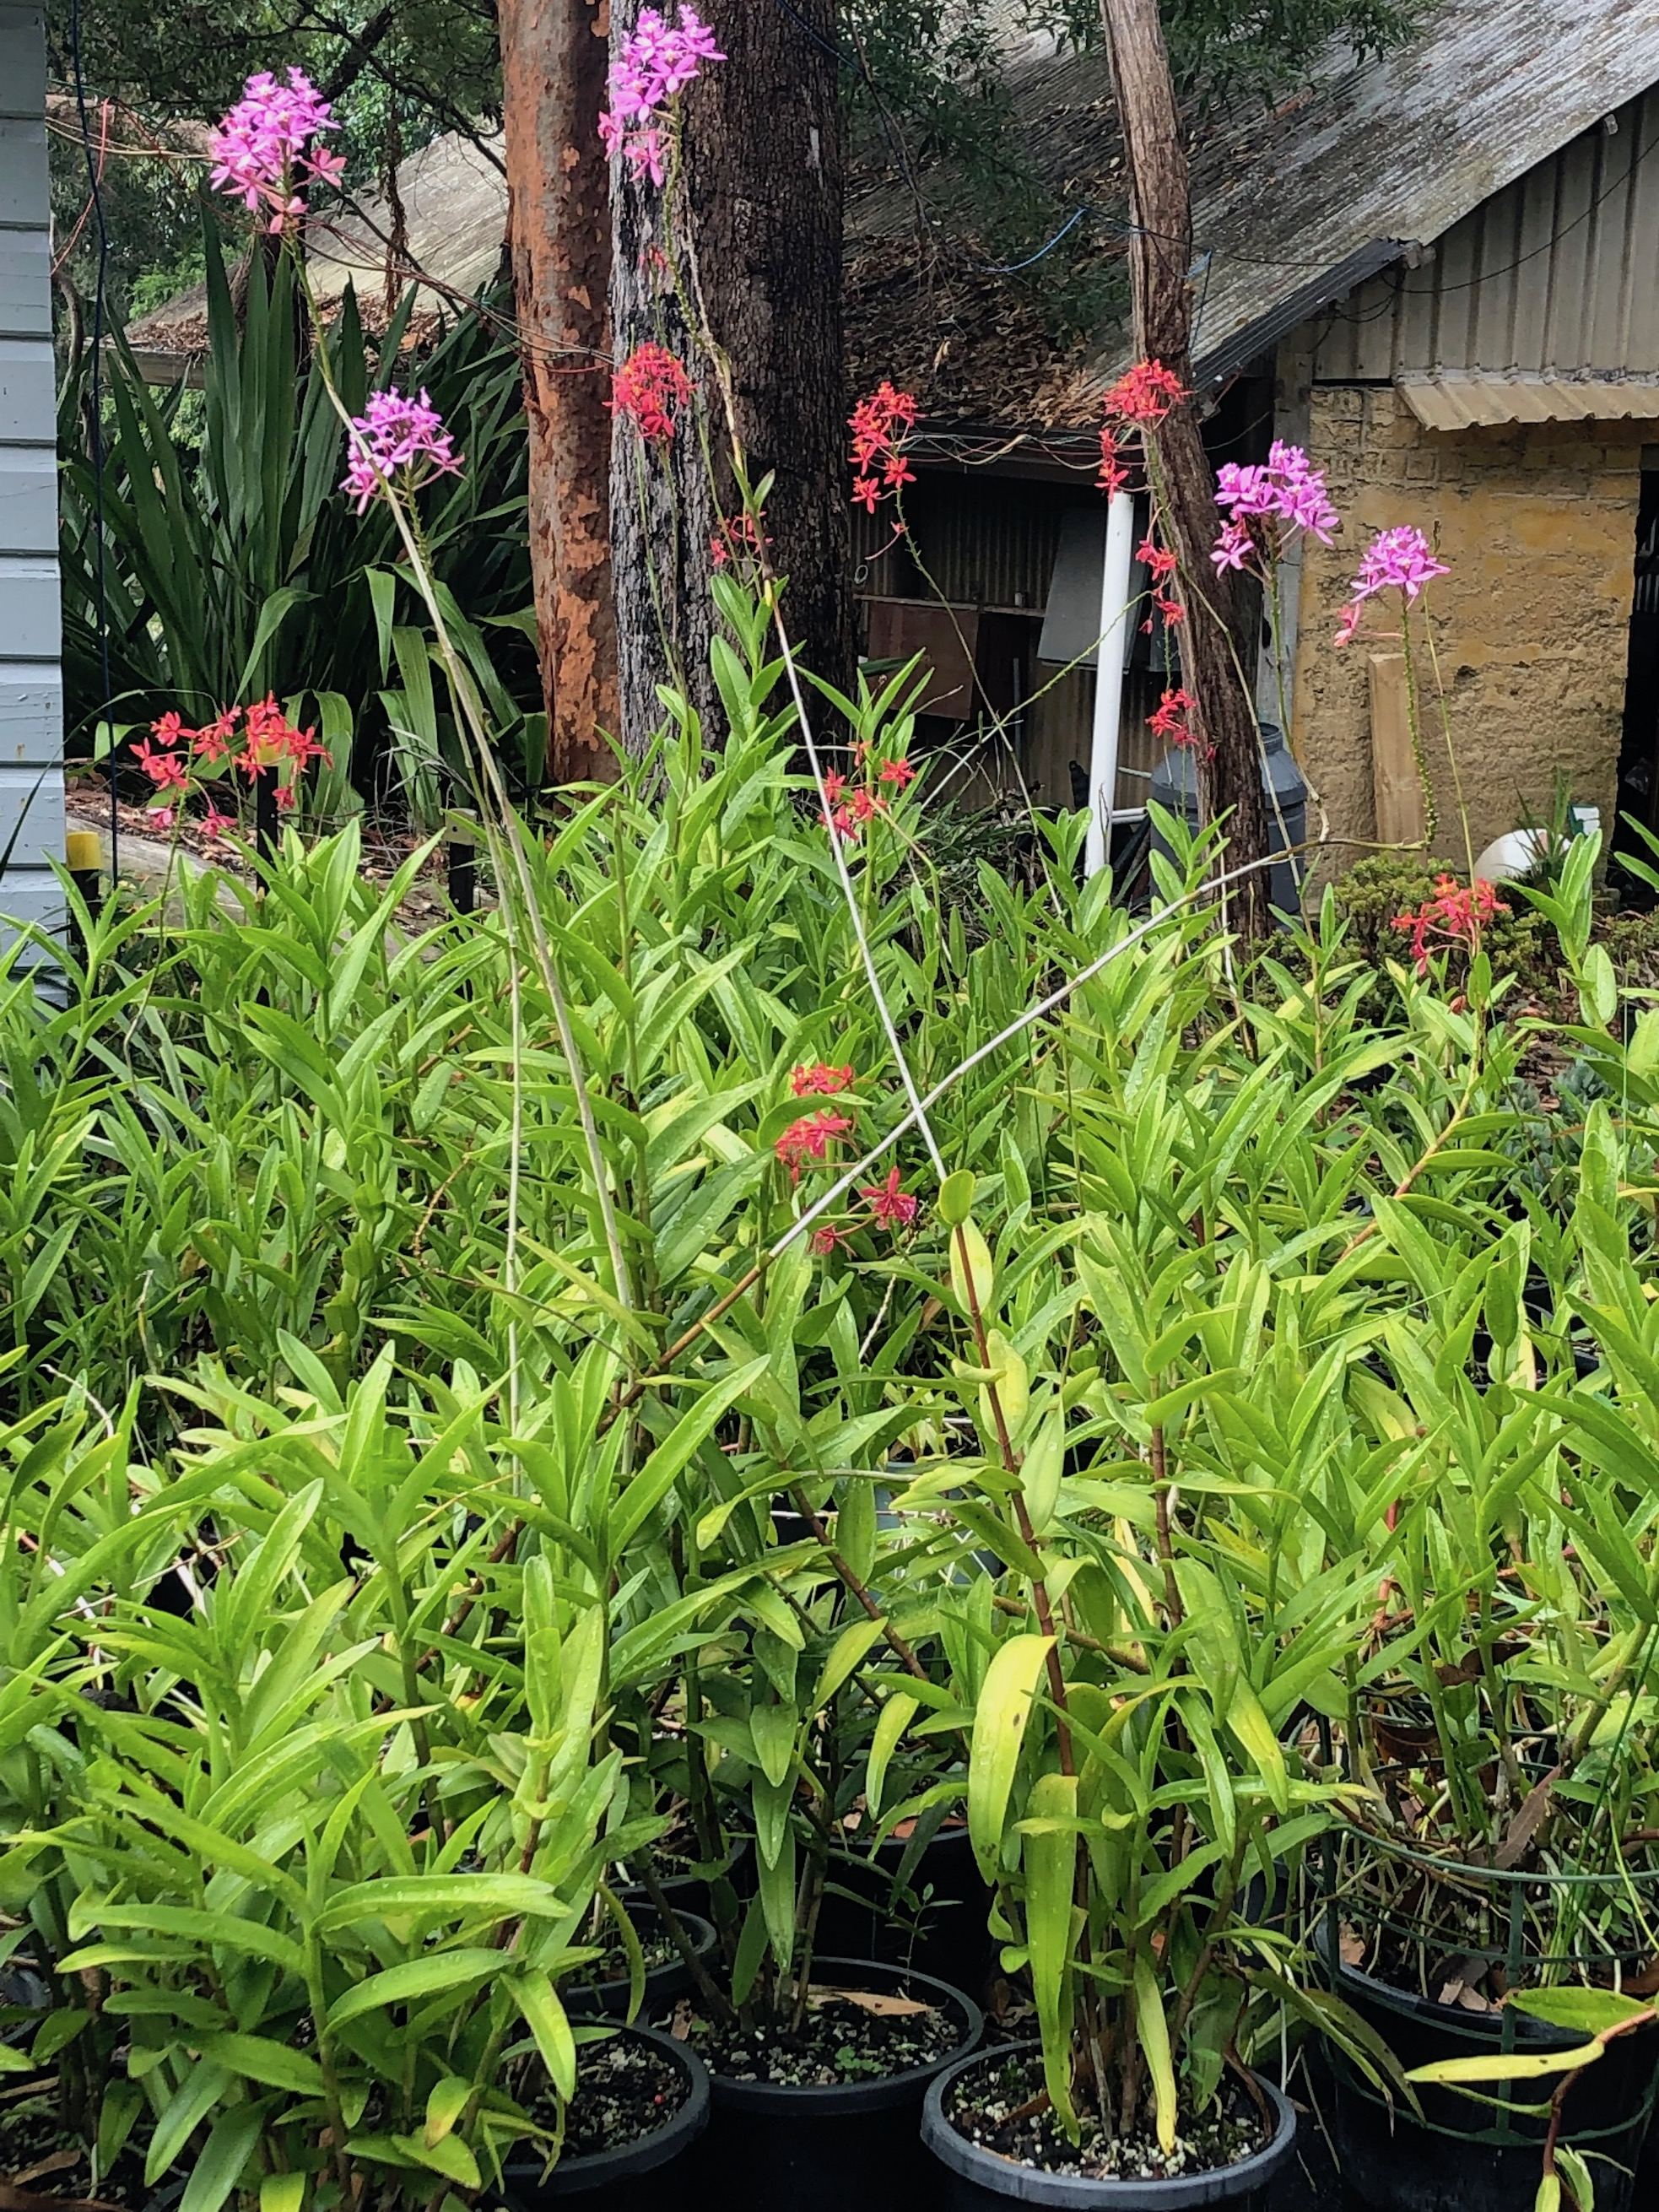 Epidendrum hybrids at Cabbage Tree